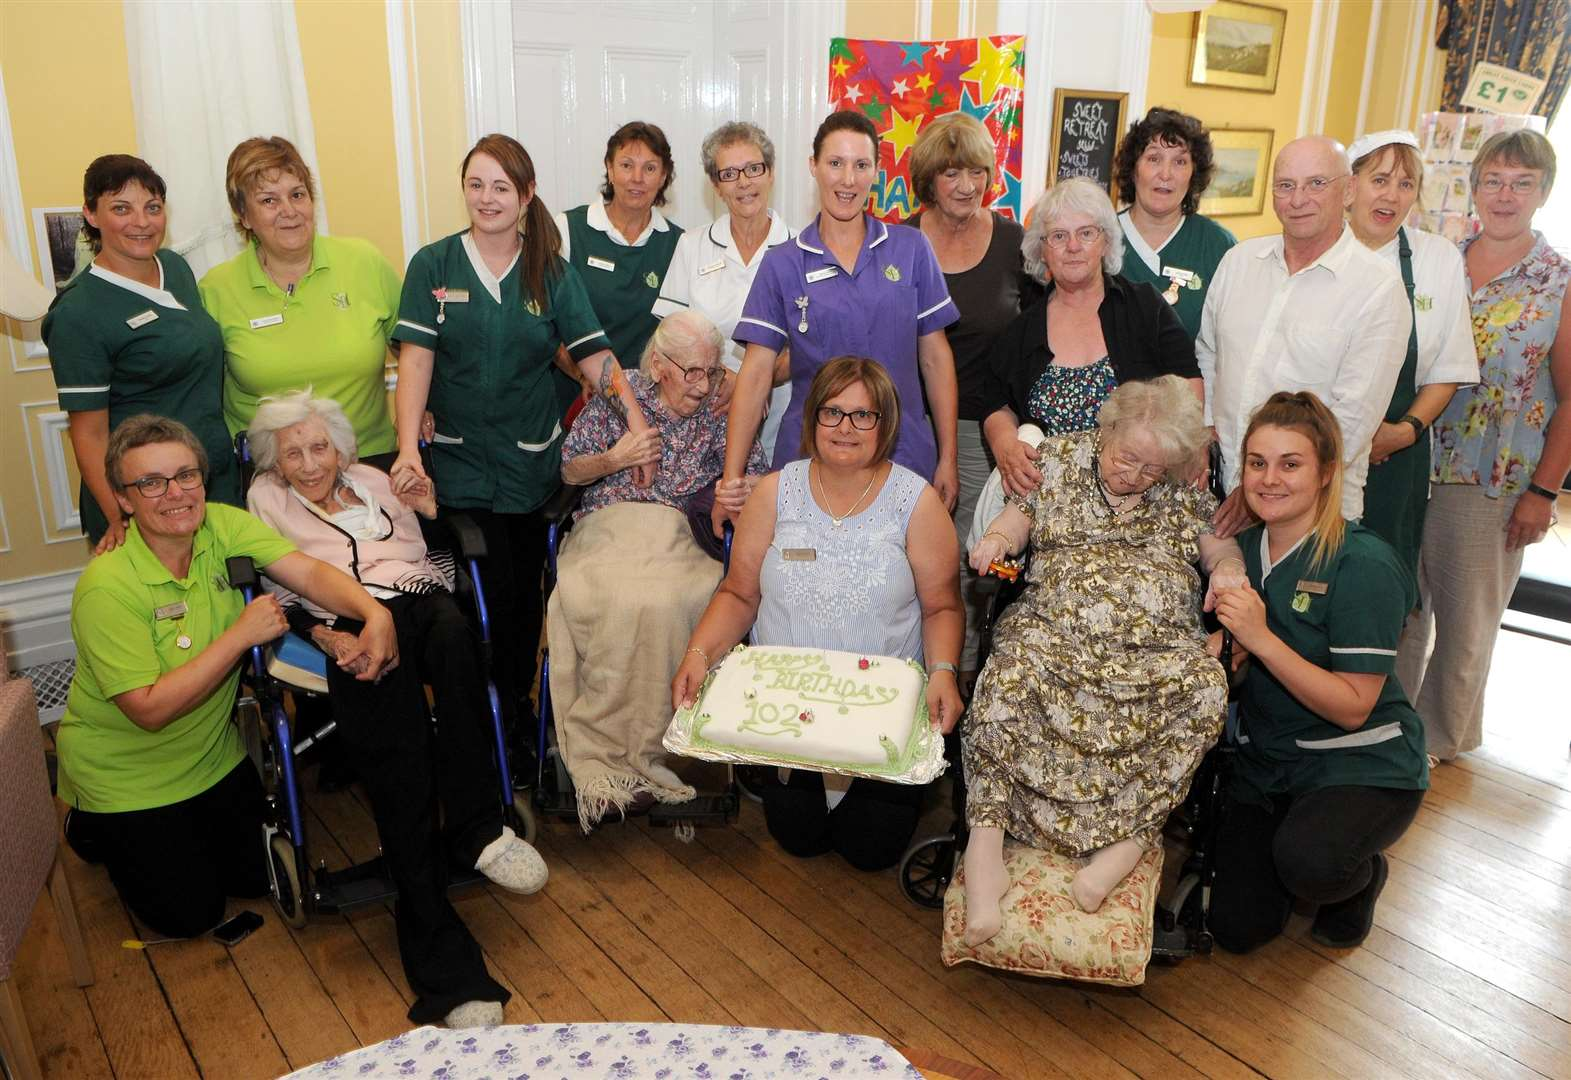 Triple celebration as Jean, Kathleen and Marguerite turn 102